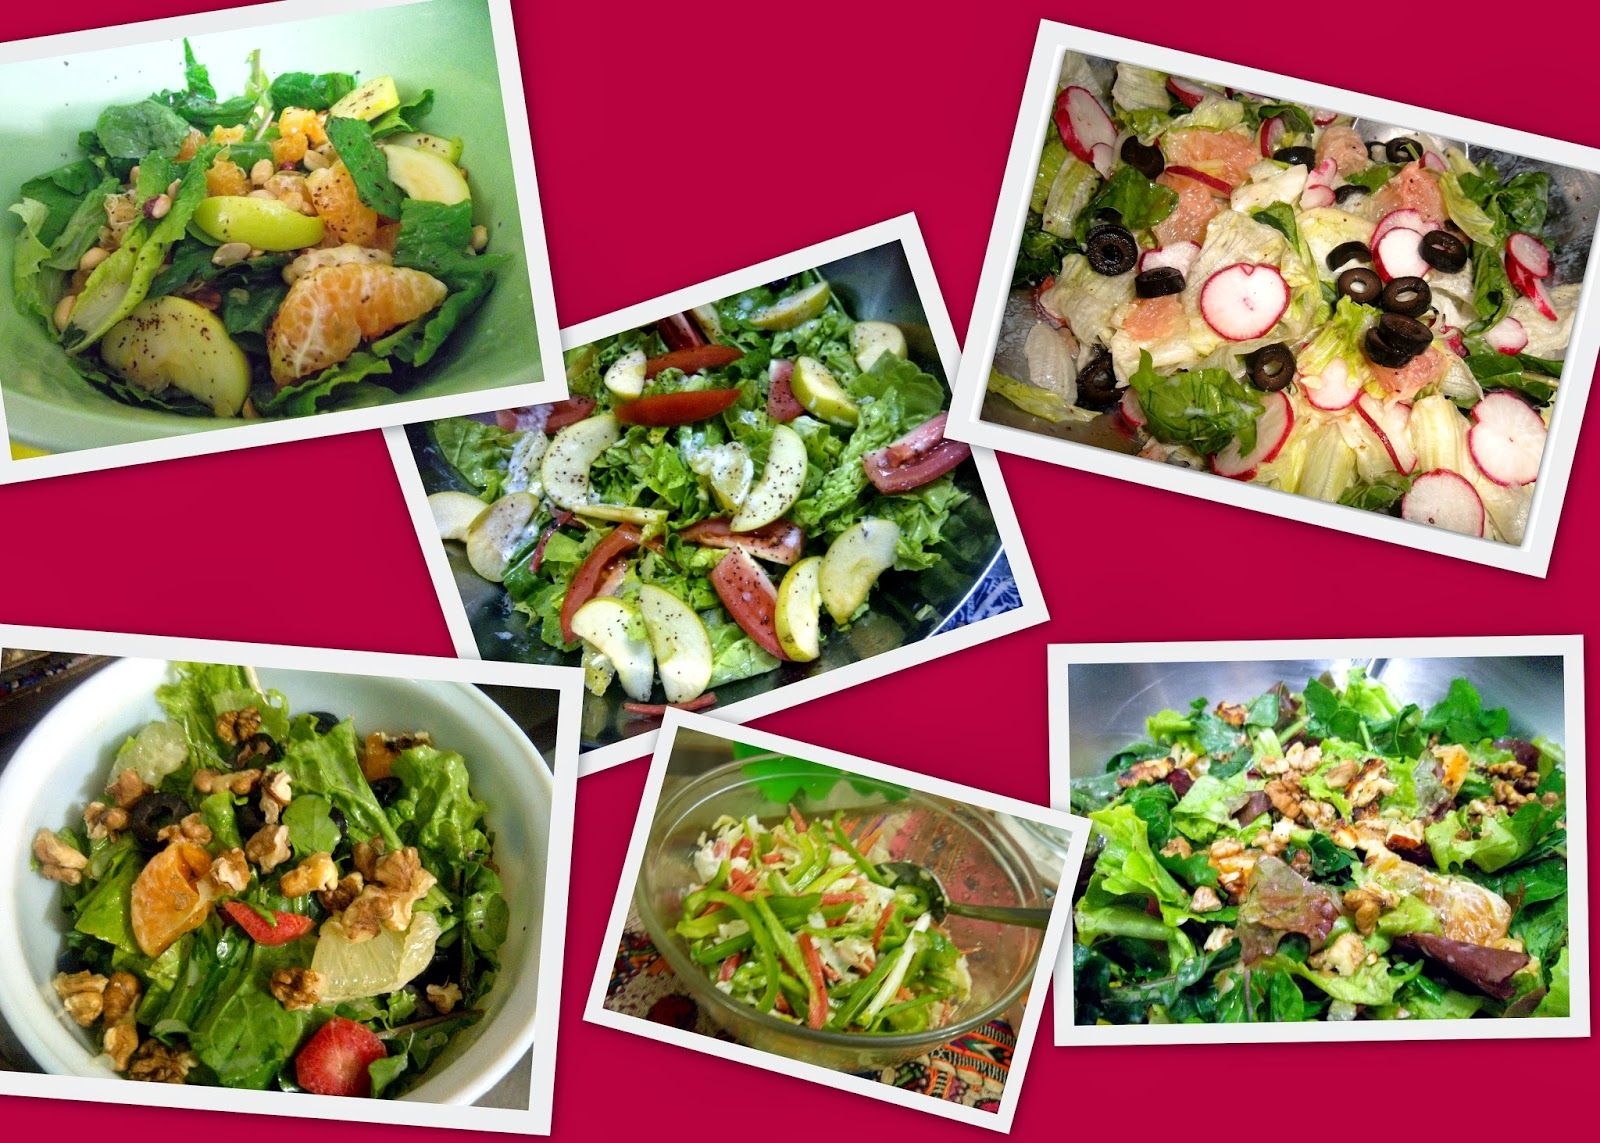 Fresh Salads tossed with various Salad Dressings